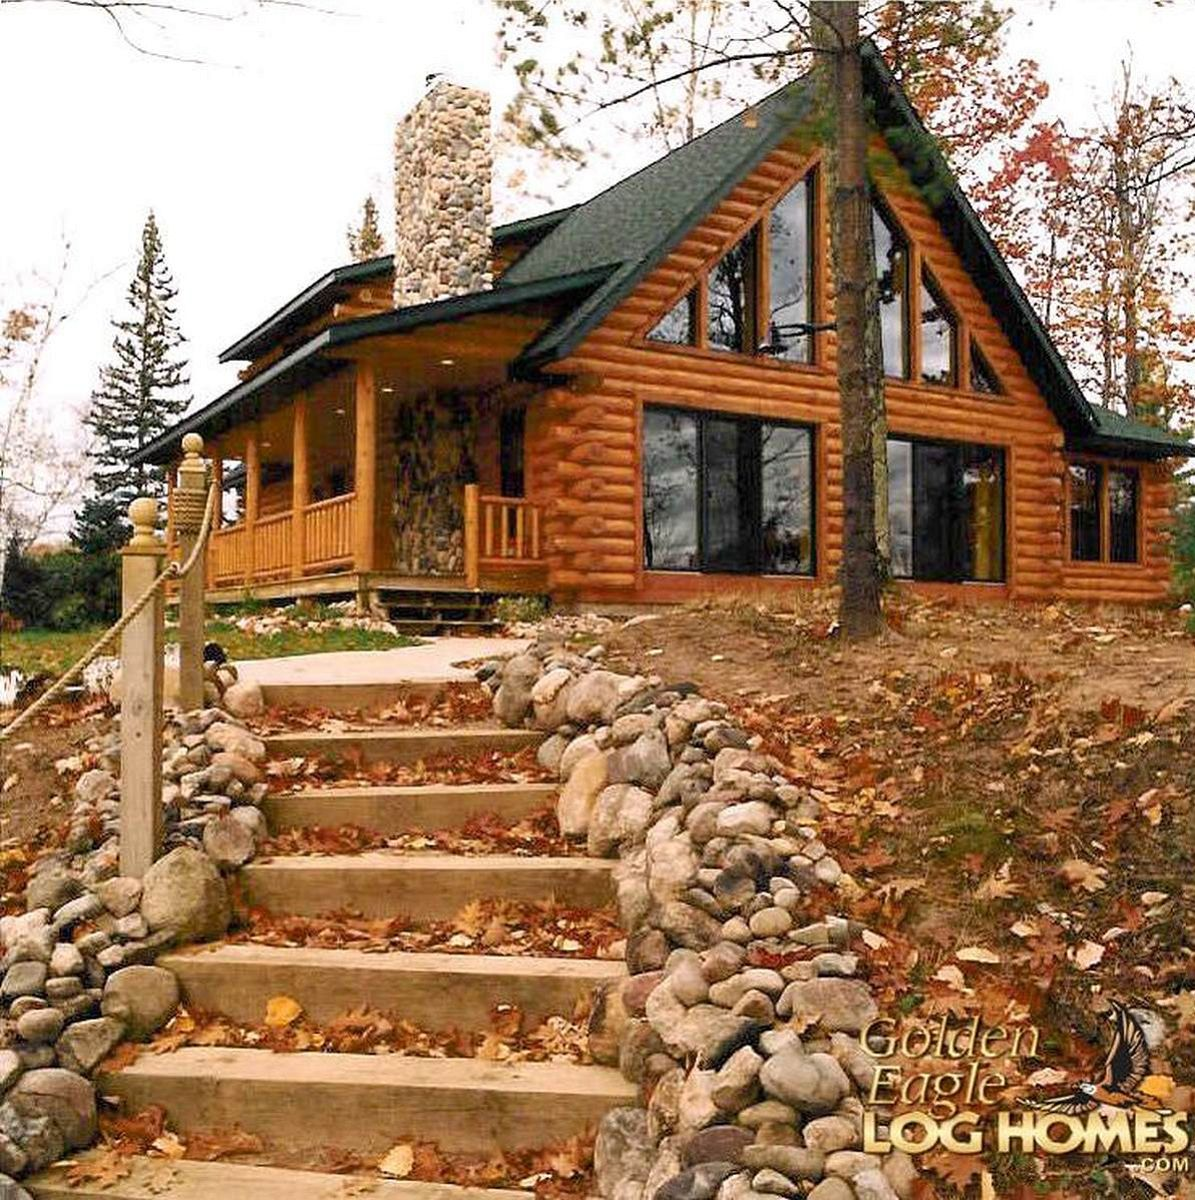 Log home by golden eagle log homes golden eagle log logs for Plans for log cabin homes